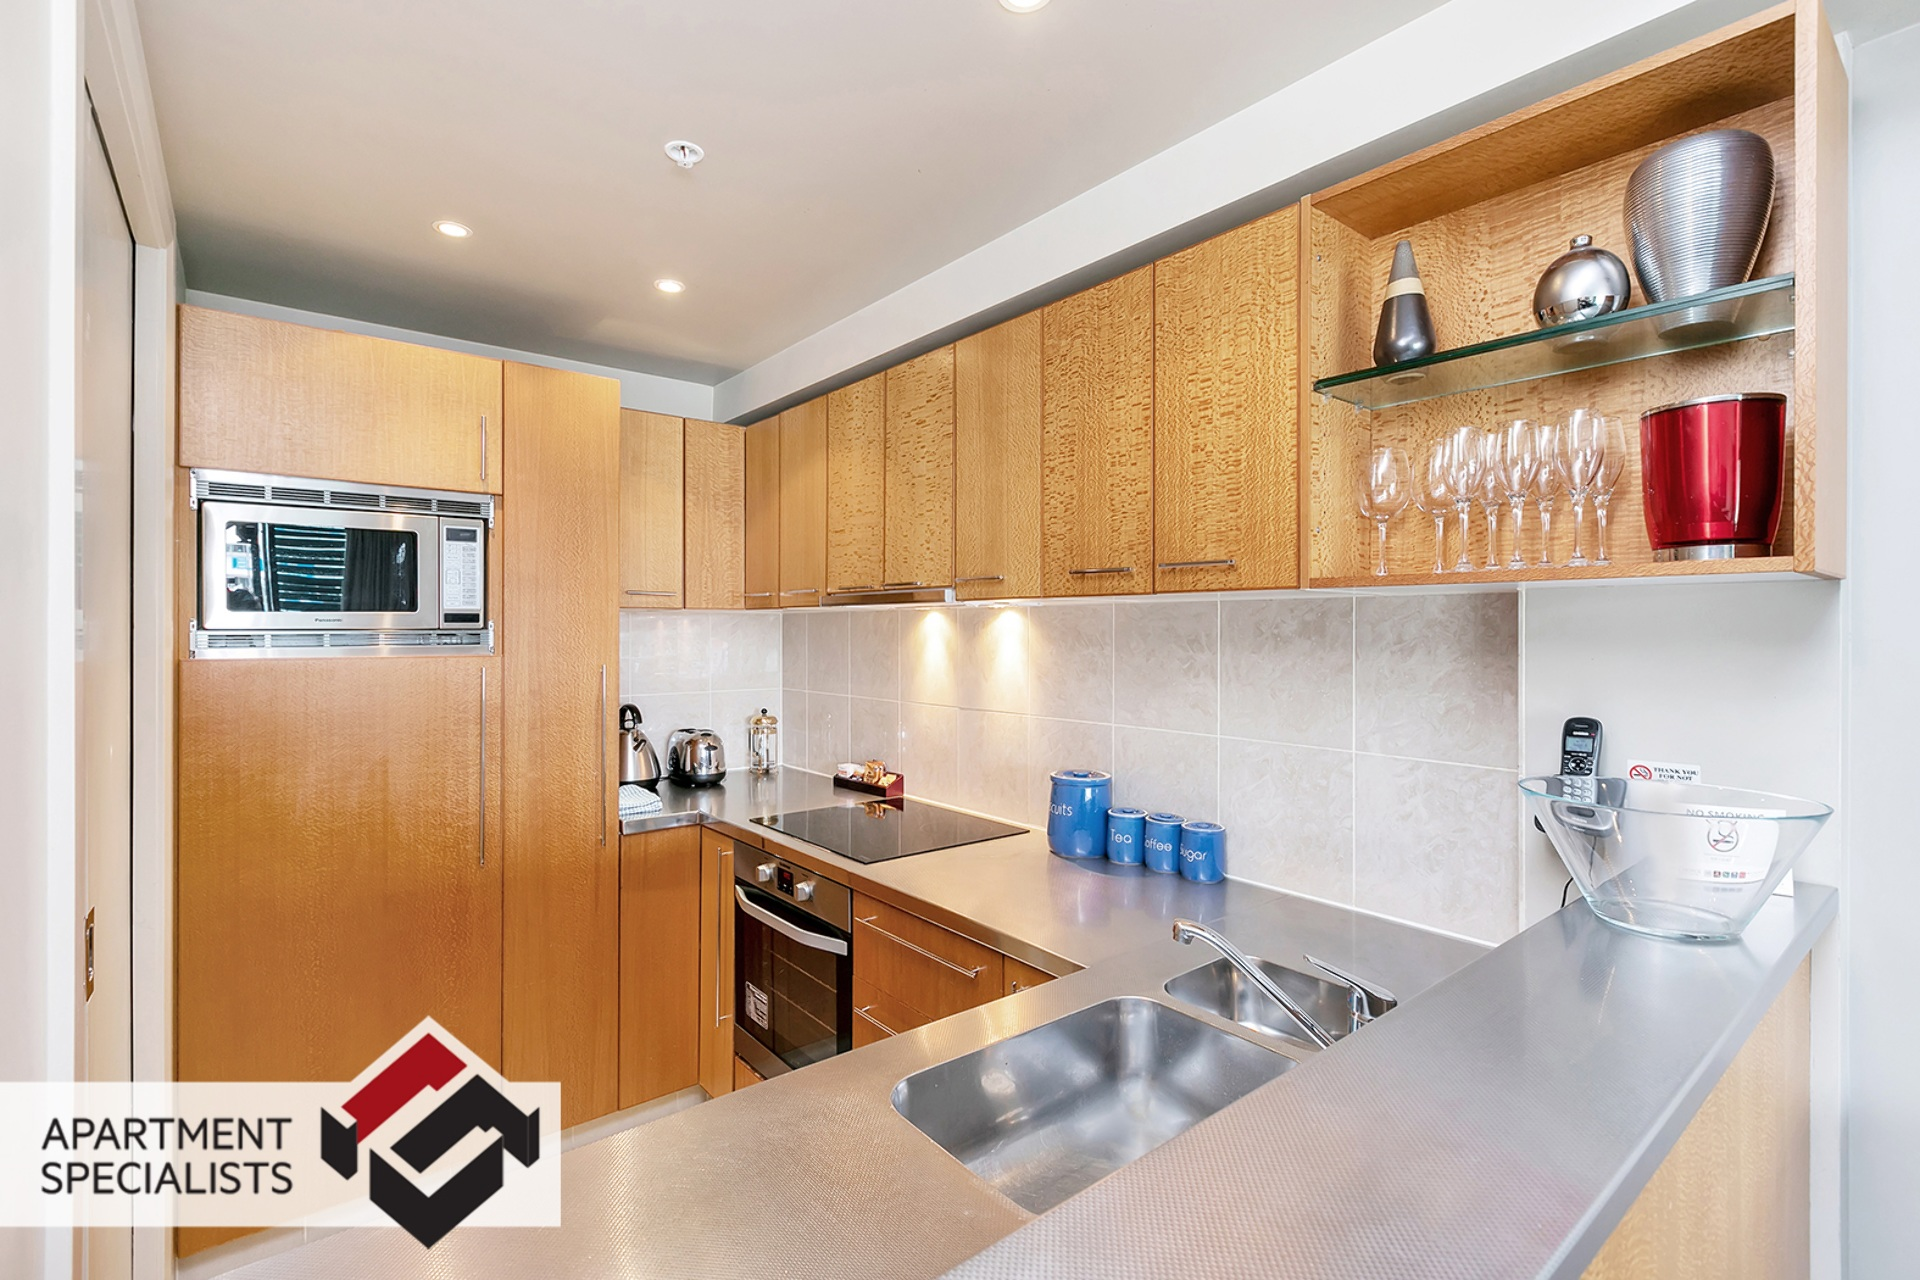 5 | 99 Customs Street West, City Centre | Apartment Specialists